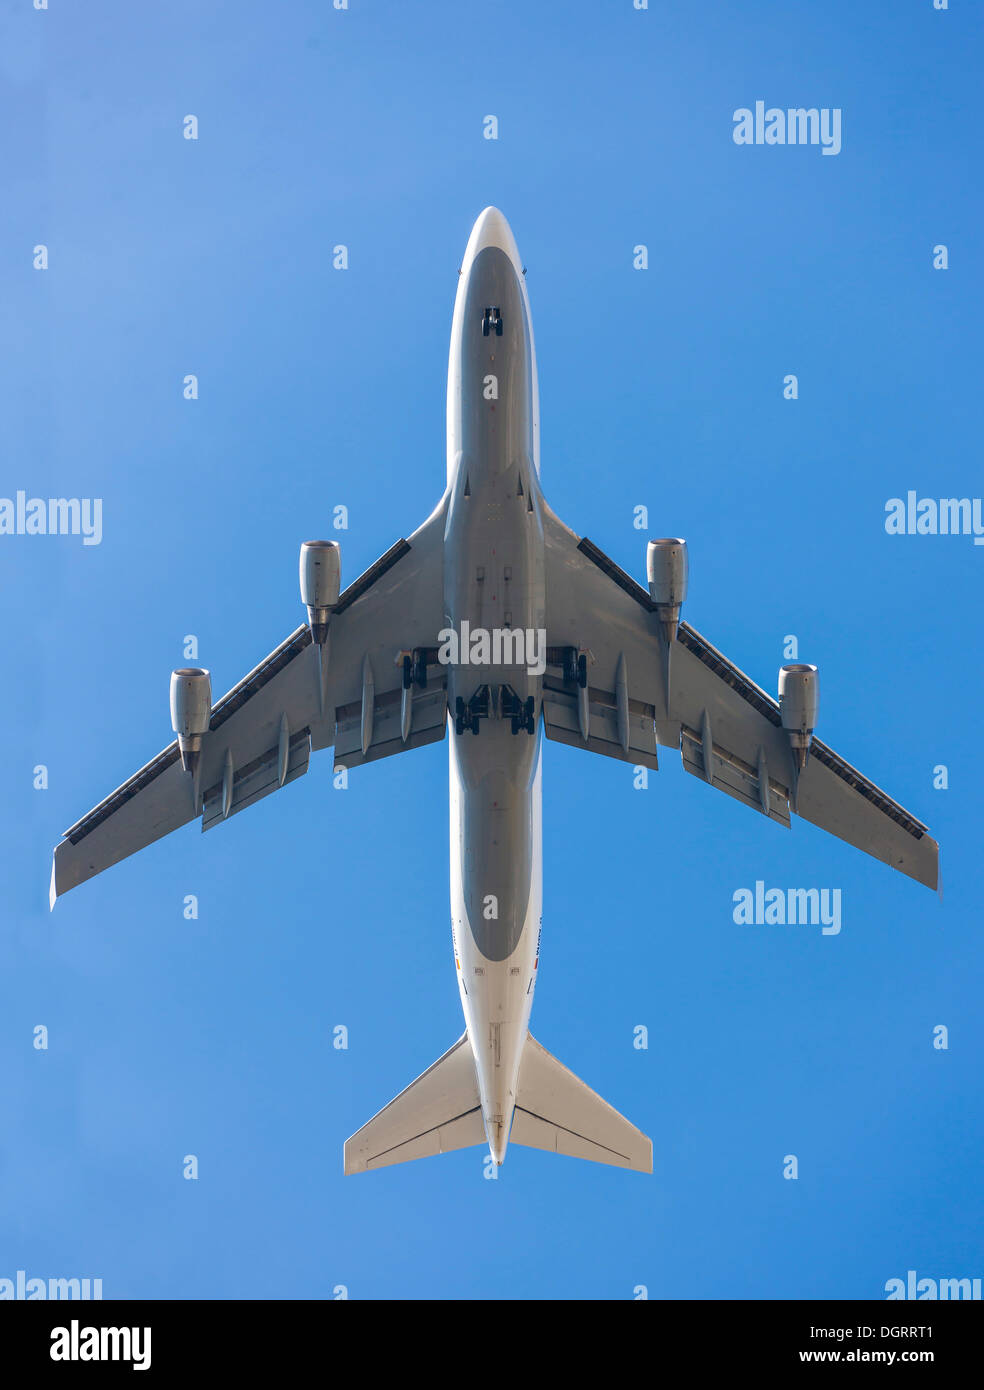 Boeing 747 from below, Hesse - Stock Image